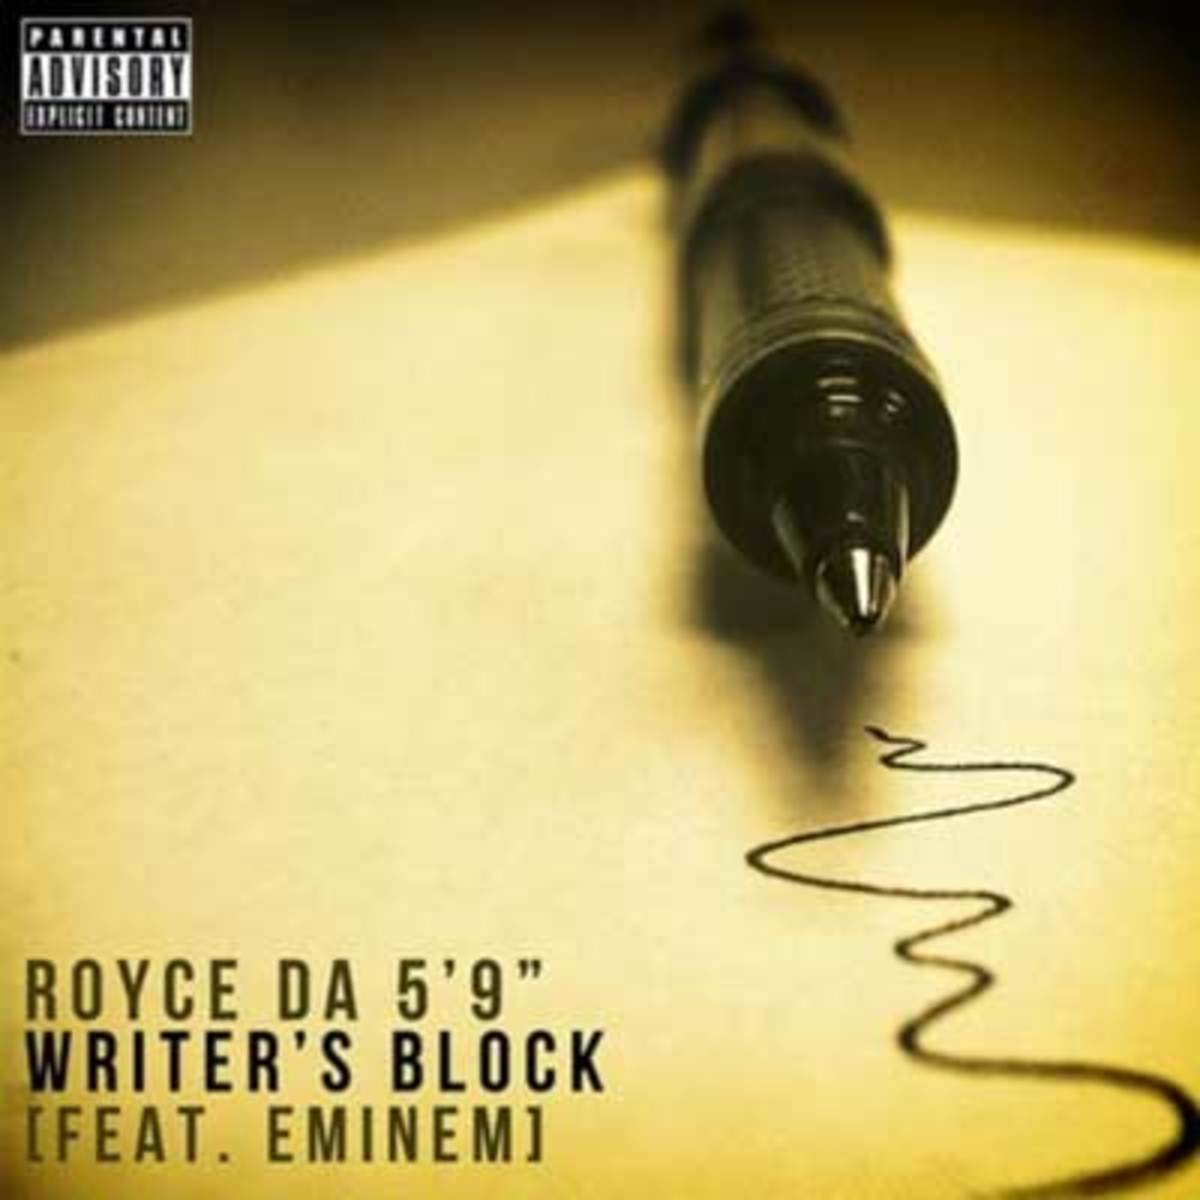 royceda-writersblock.jpg